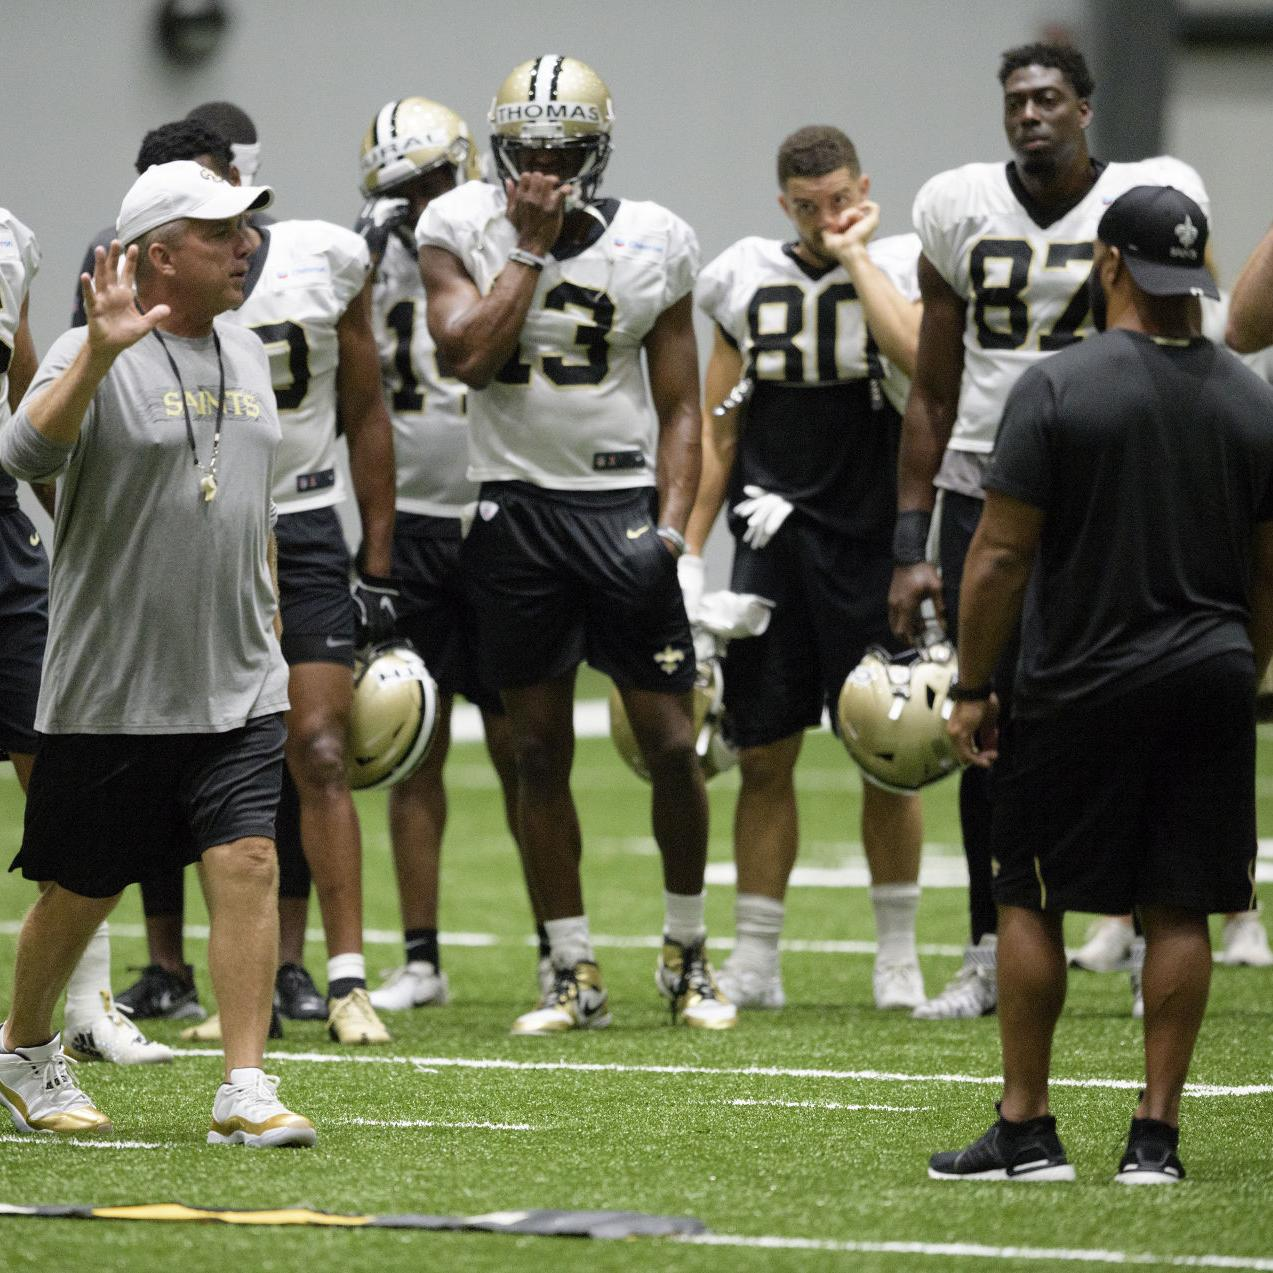 afa8c595 Saints looking at new faces: Joint practices with Chargers offer ...